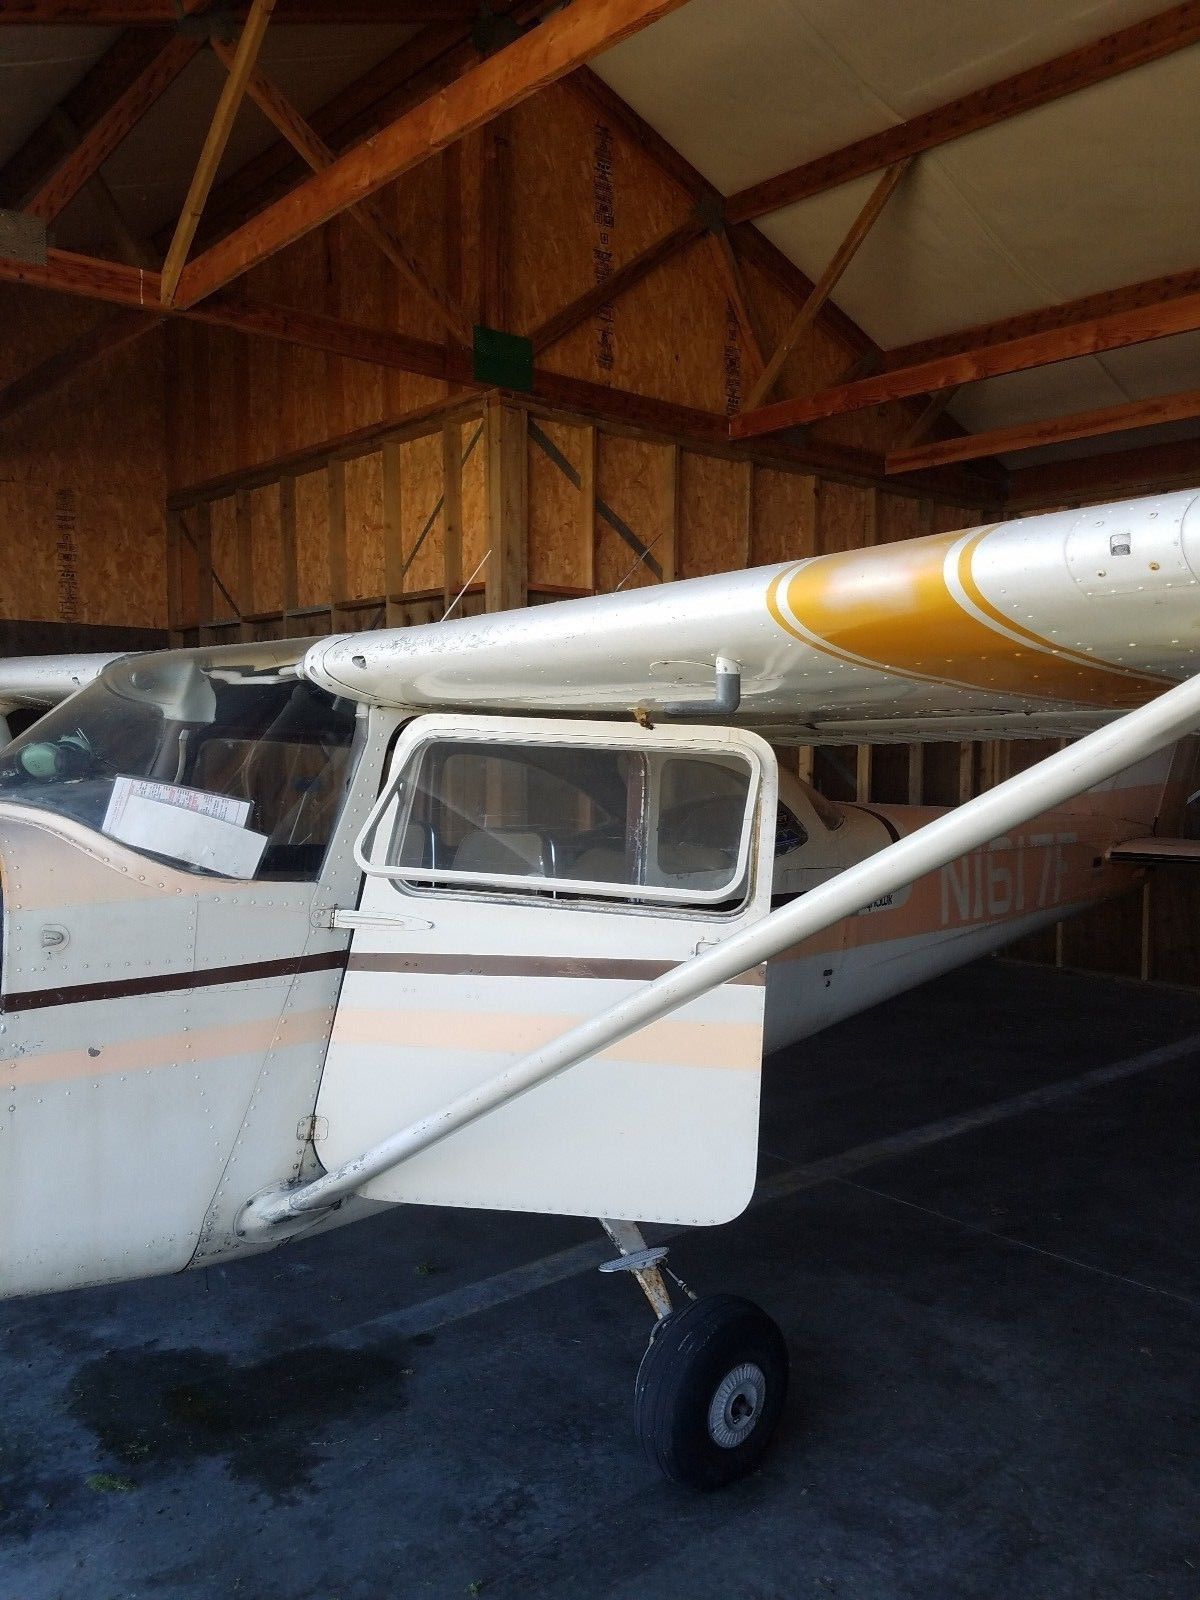 new parts 1966 Cessna Skyhawk 172H aircraft for sale